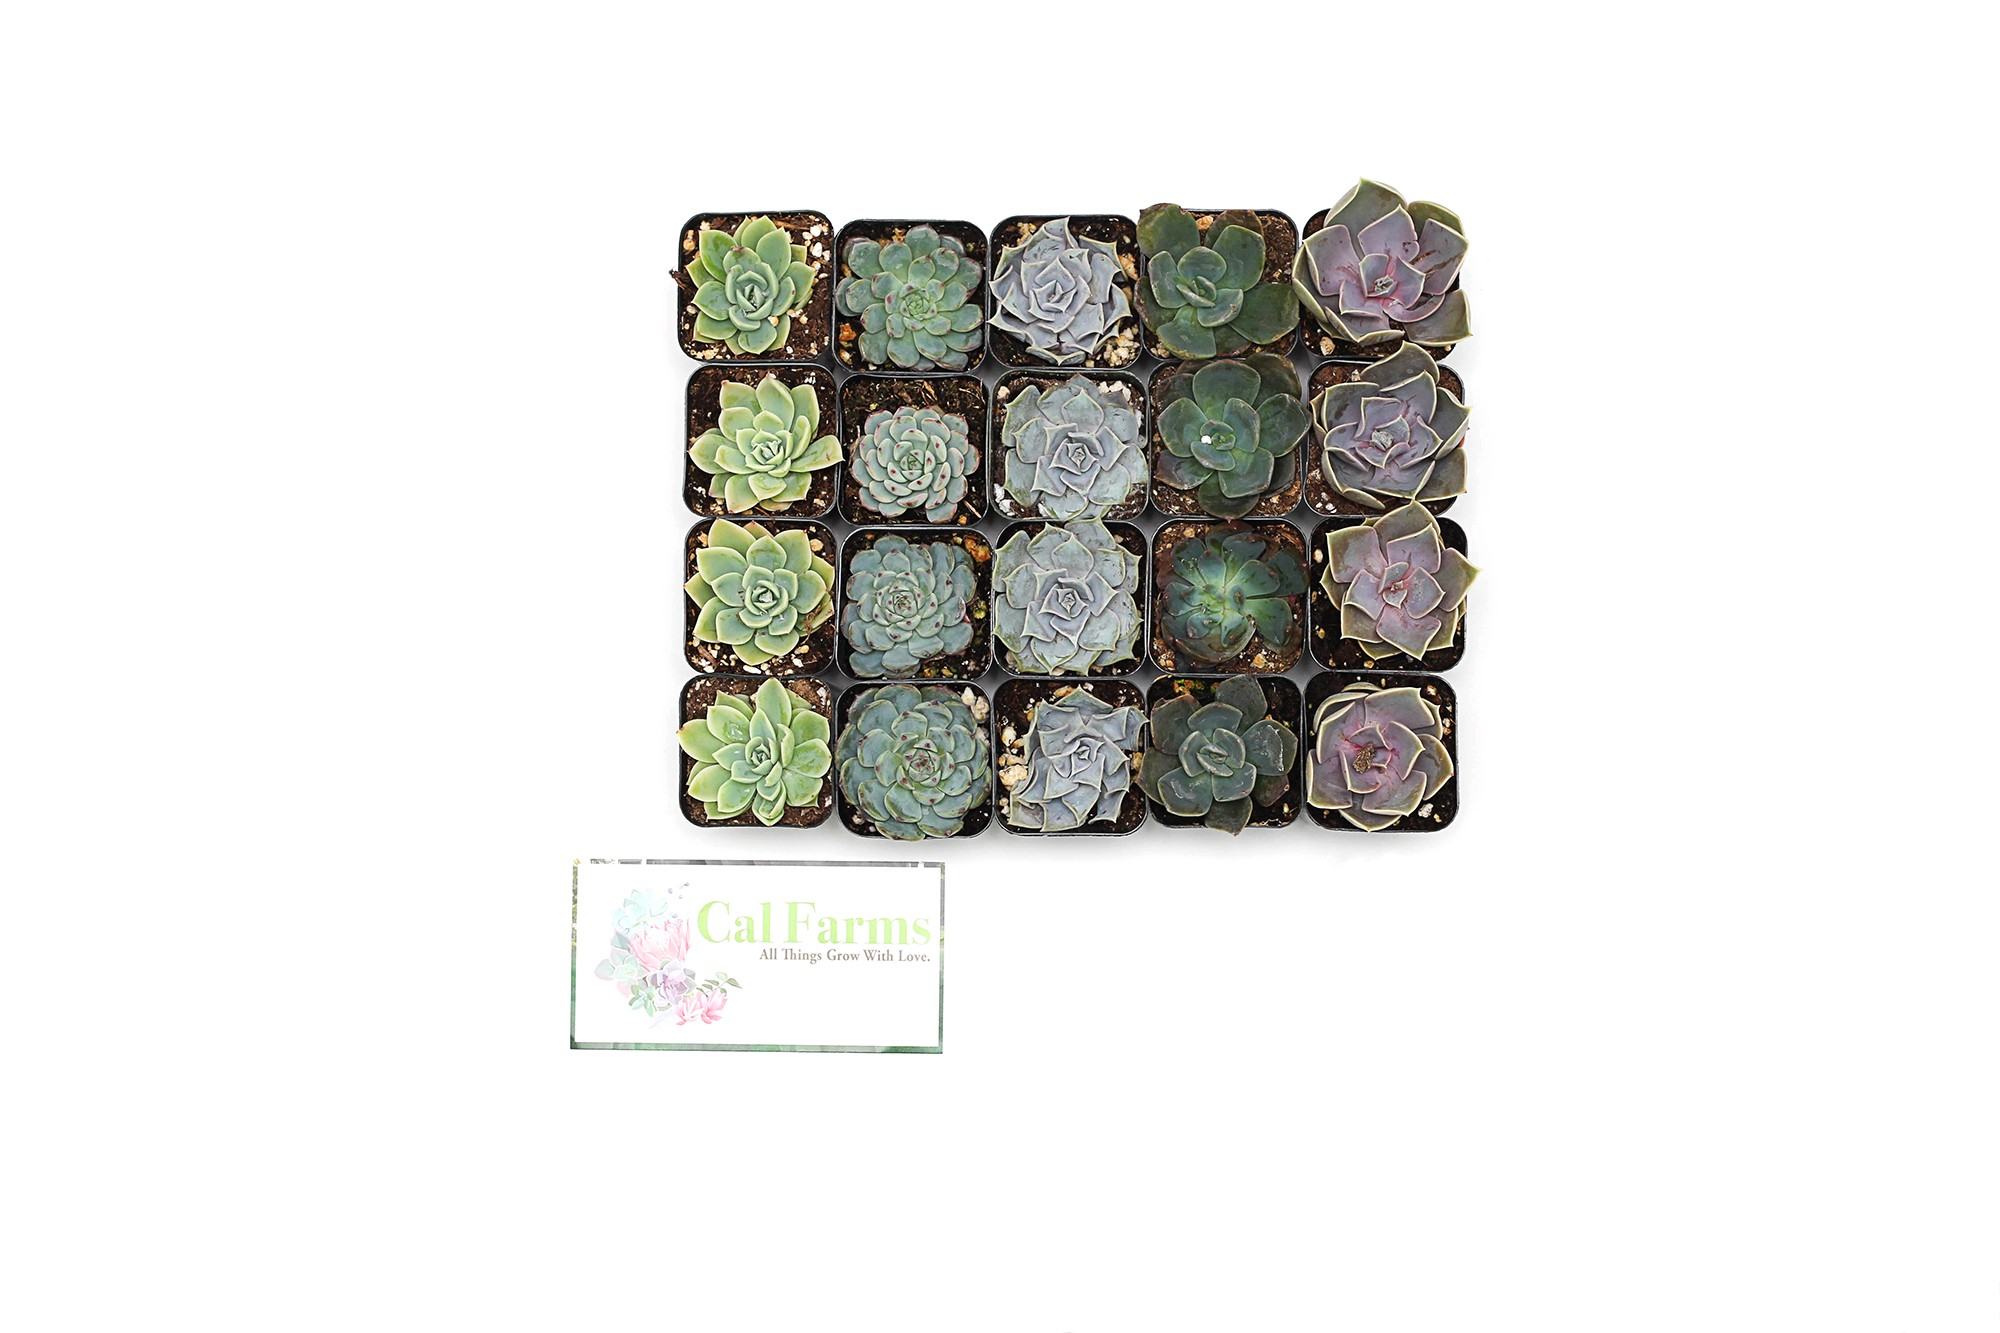 Cal Farms 20 Of 2 Beautiful Rosettes Succulents Weddings Or Party Favors Or Succulent Gardens Cal Farms Succulents